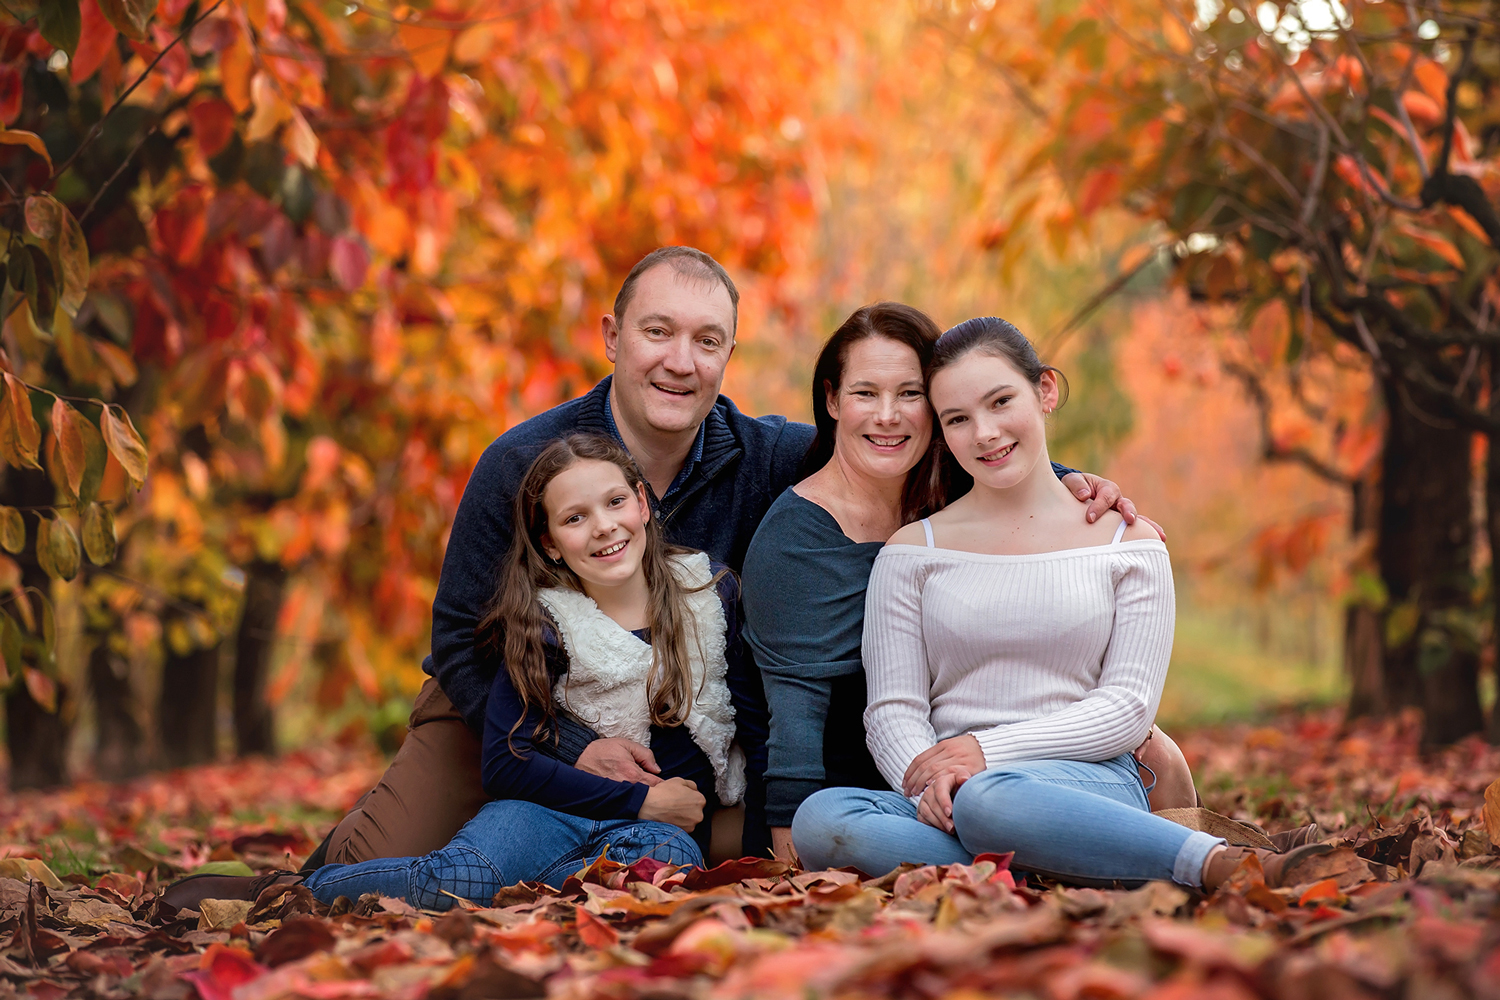 Family-Portraits-at-Raeburn-Orchards-with-Cathy-Britton-Photography.jpg